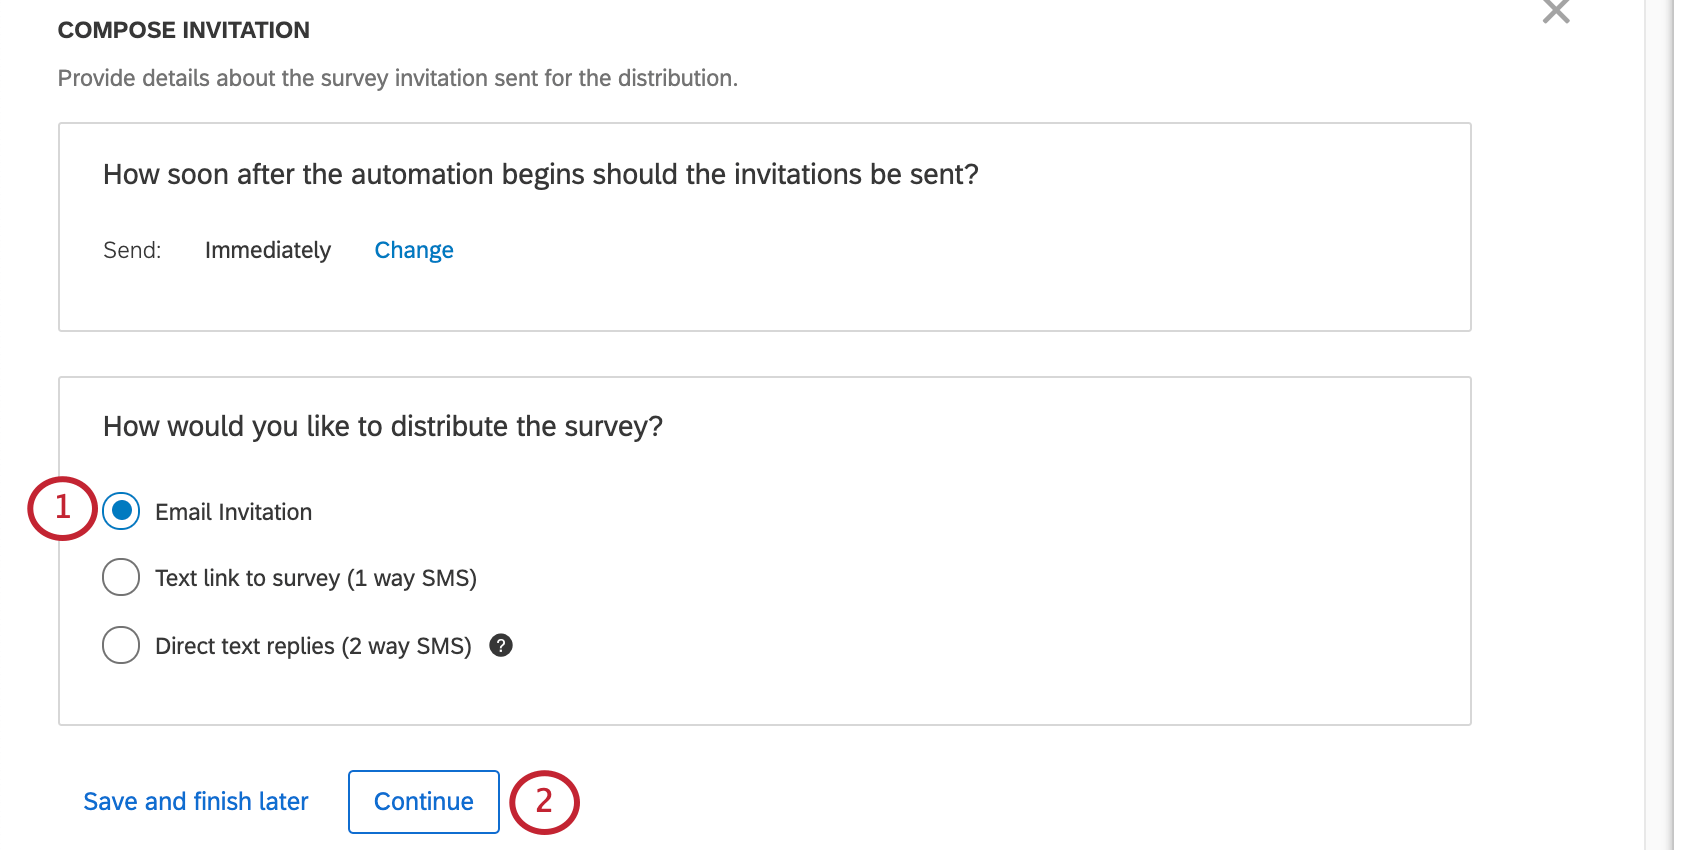 """Selecting """"email invitation"""" from the options presented"""